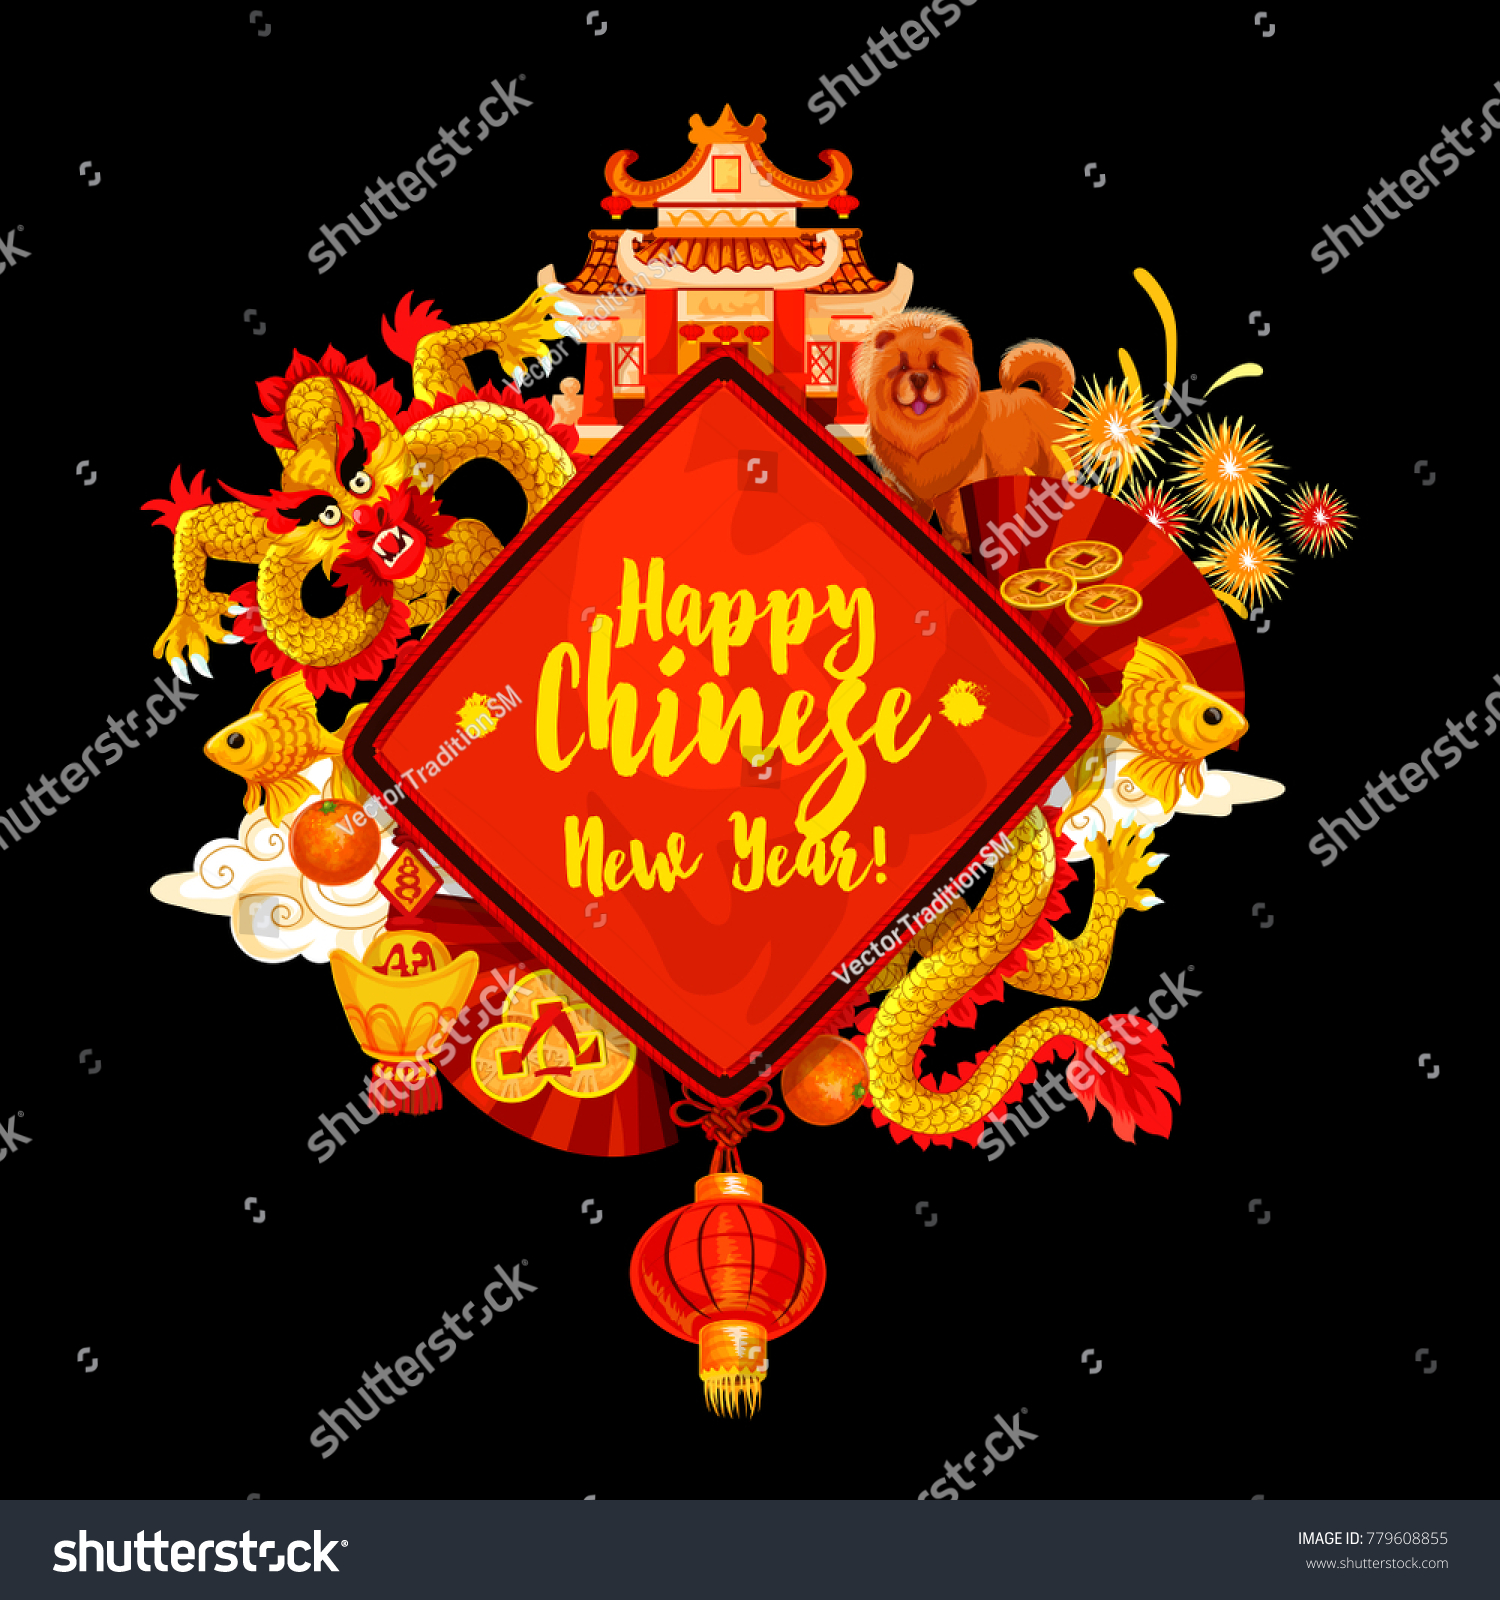 Happy Chinese New Year Wish On Stock Vector (Royalty Free) 779608855 ...